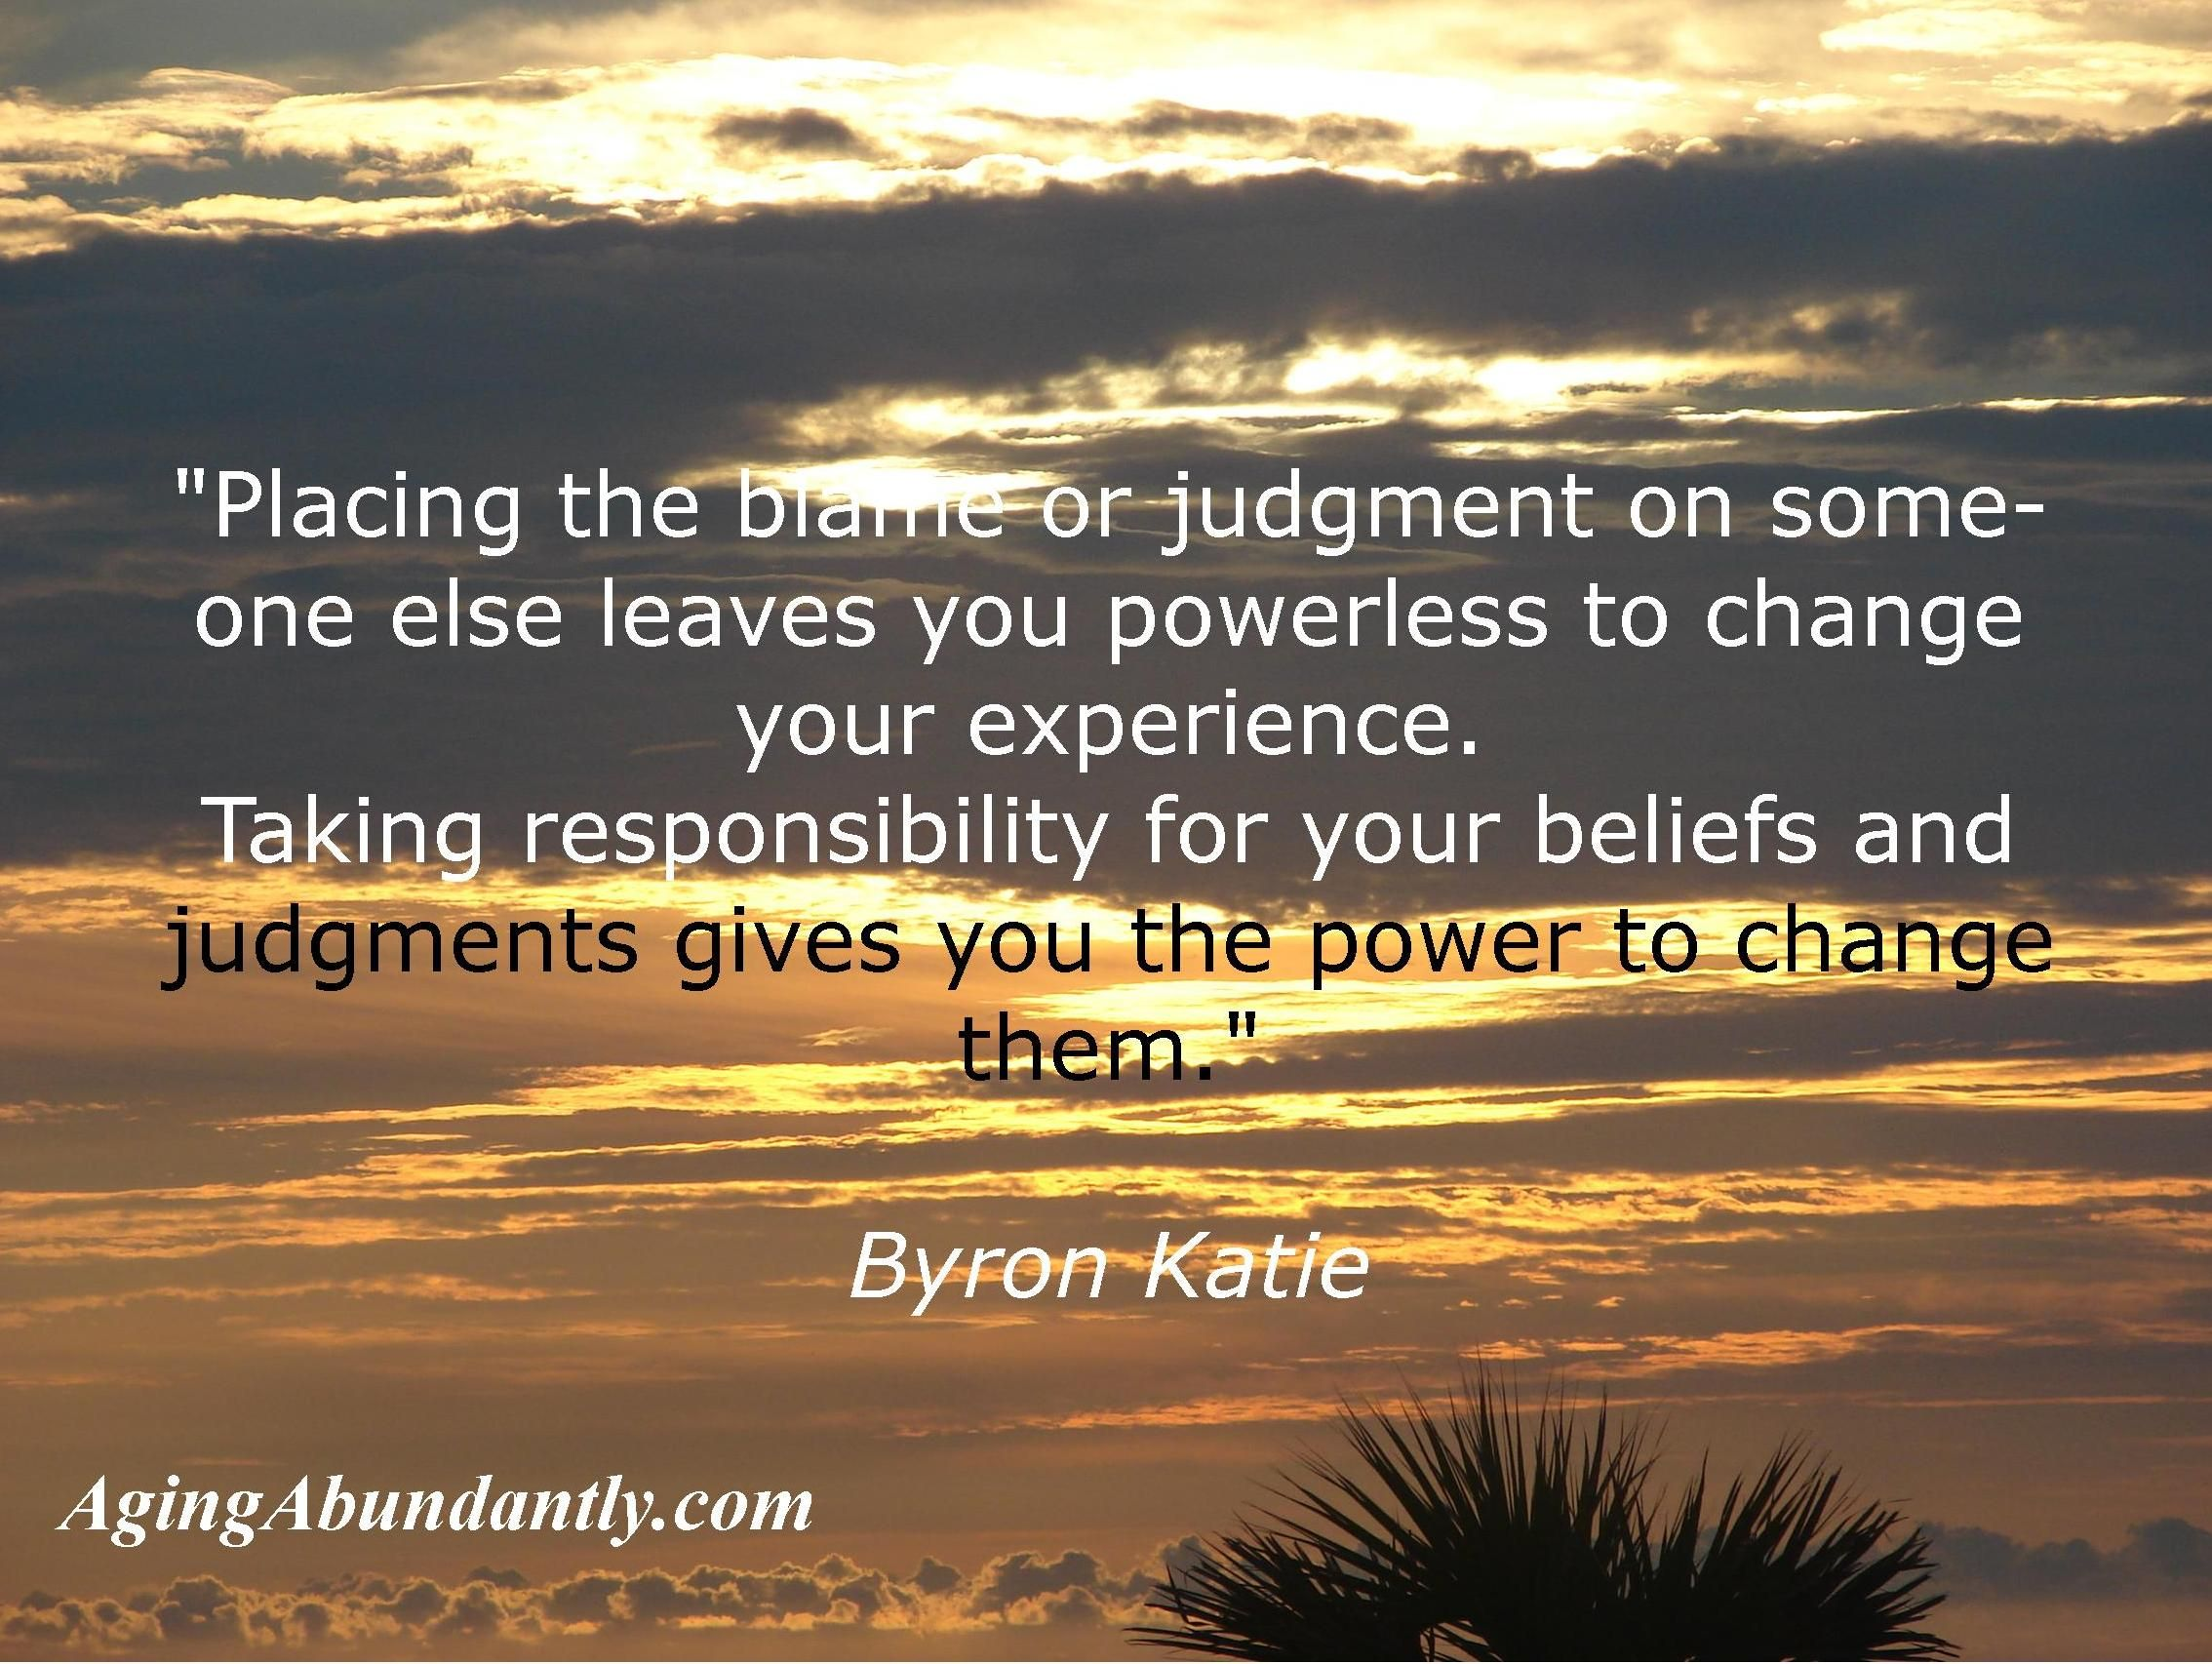 Byron Katie Quotes Placing Blame On Quotesquotesgram  20  Judgment  Pinterest